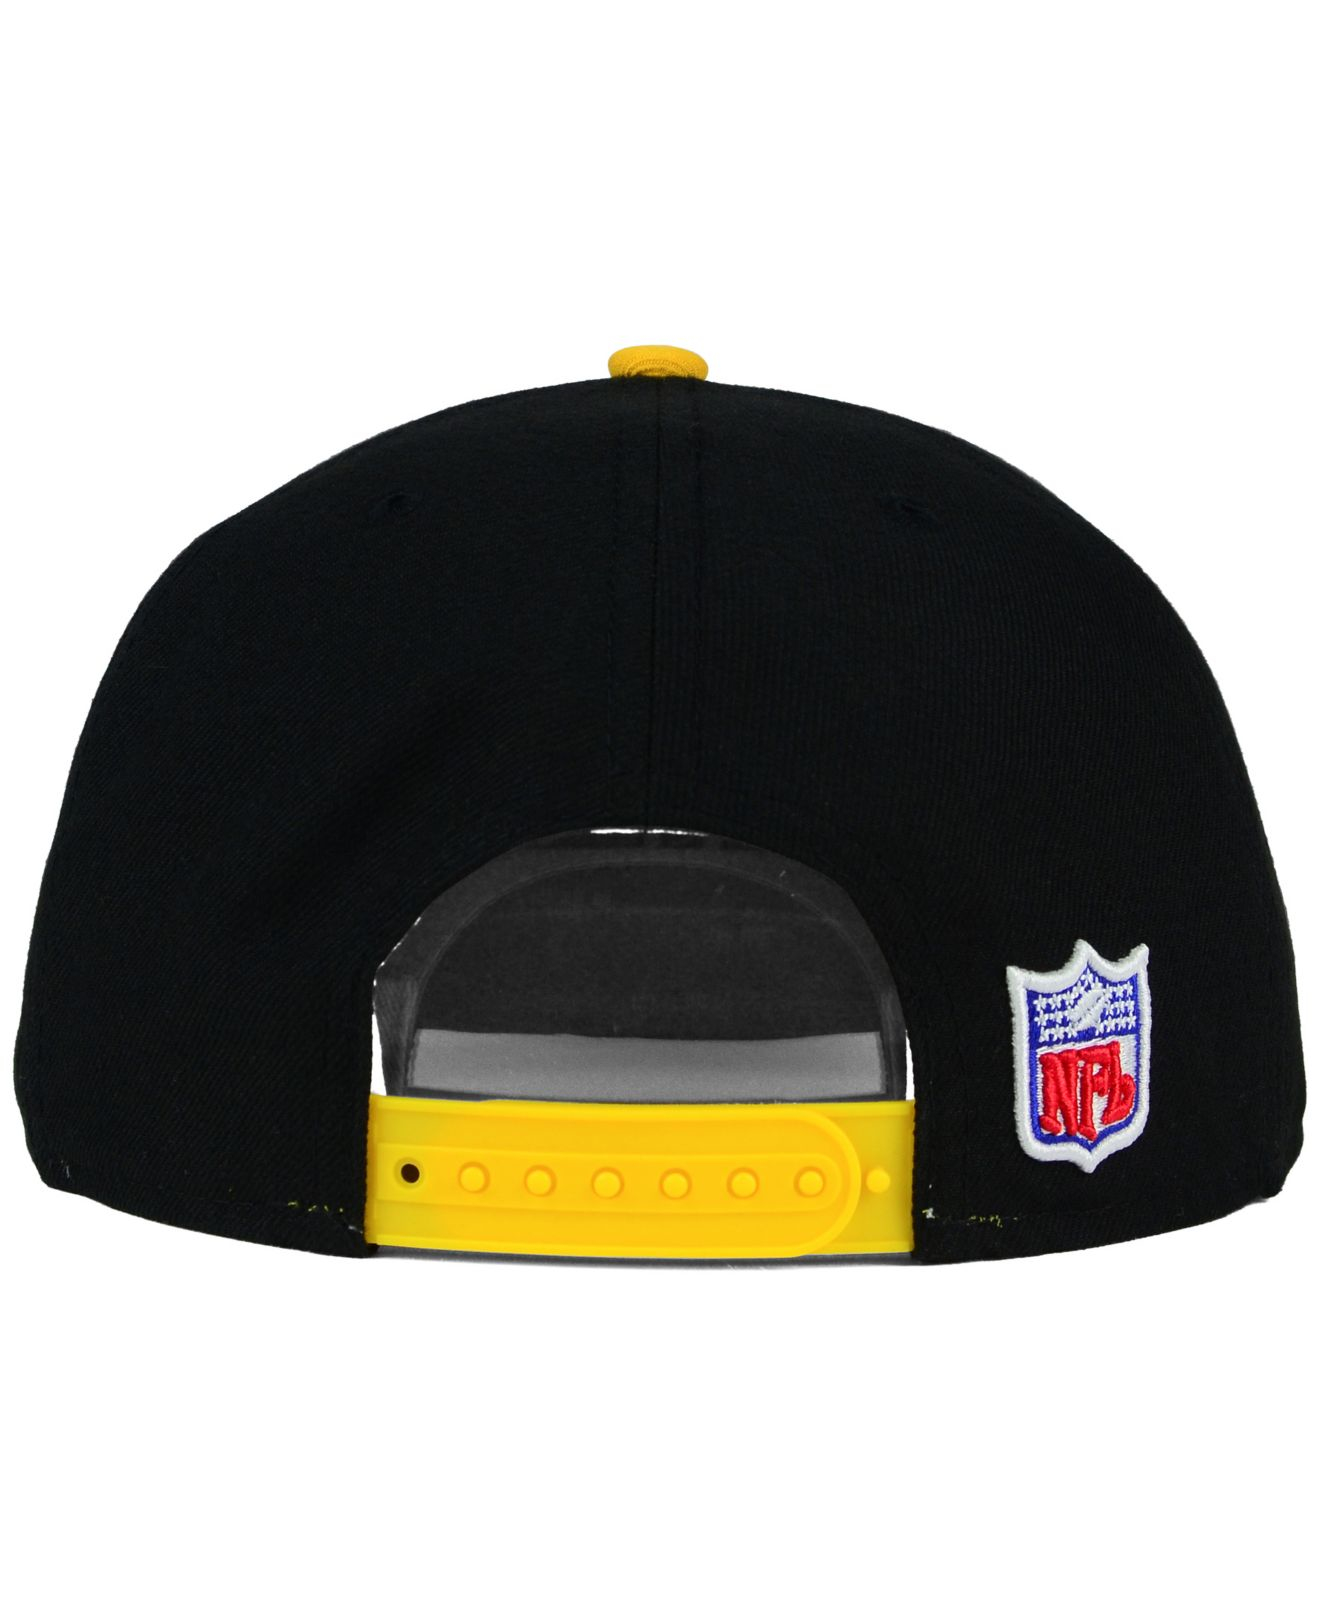 ff46bd941 ... hot ktz pittsburgh steelers retro striped 9fifty snapback cap in mens pittsburgh  steelers new era fd633 switzerland steelers beanie hats ...